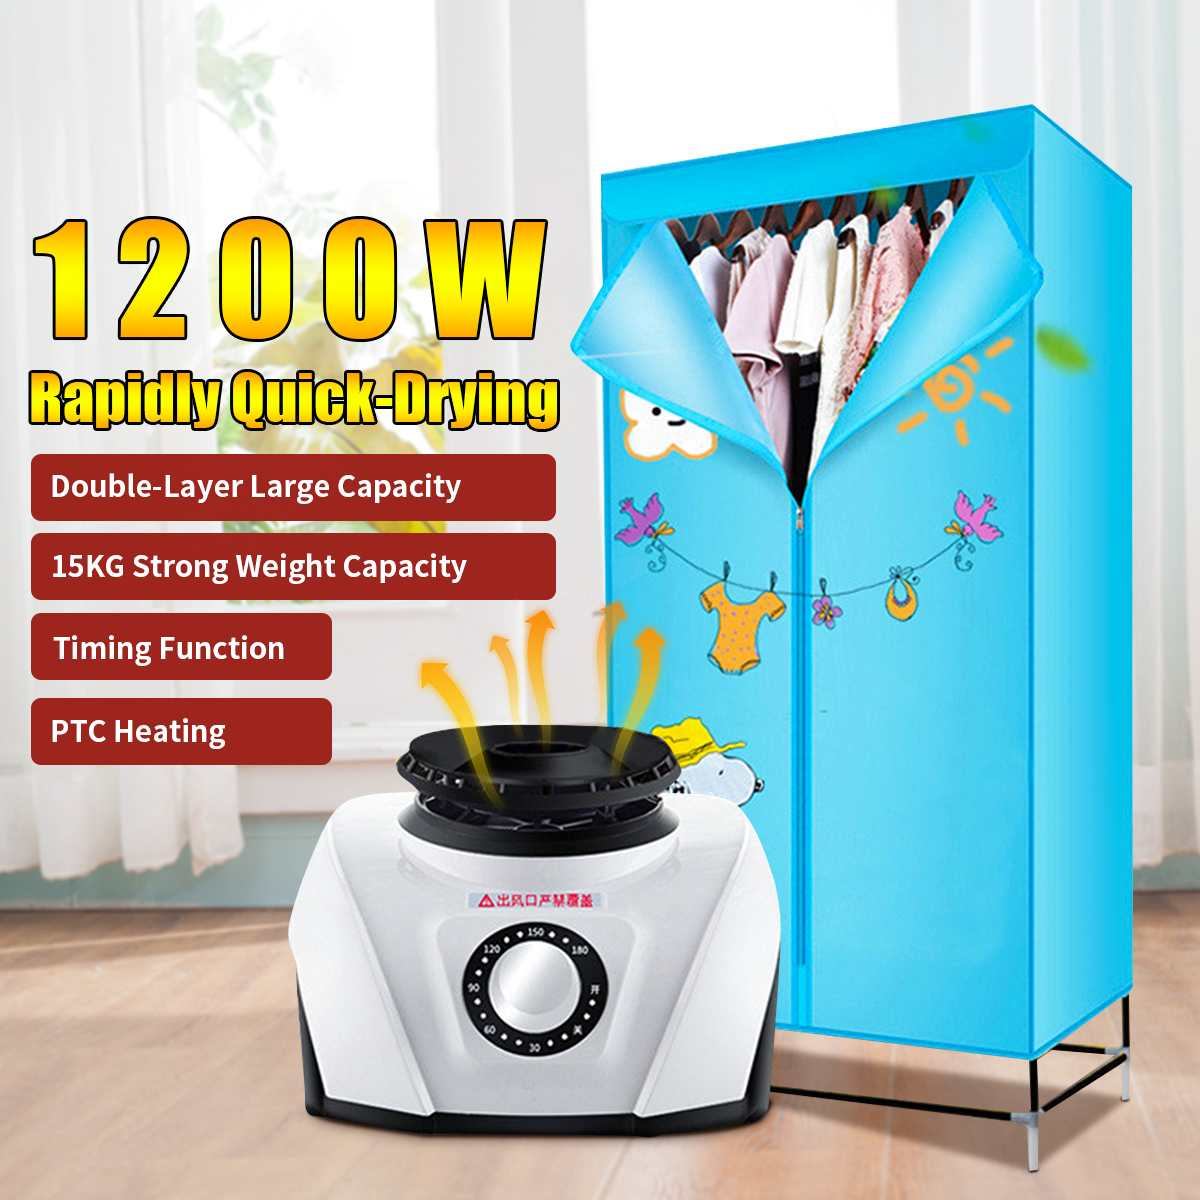 1200W 220V Double Layer Large Capacity Electric Cloth Dryer Household Portable Baby Clothes Shoes Heater Silent Dryer